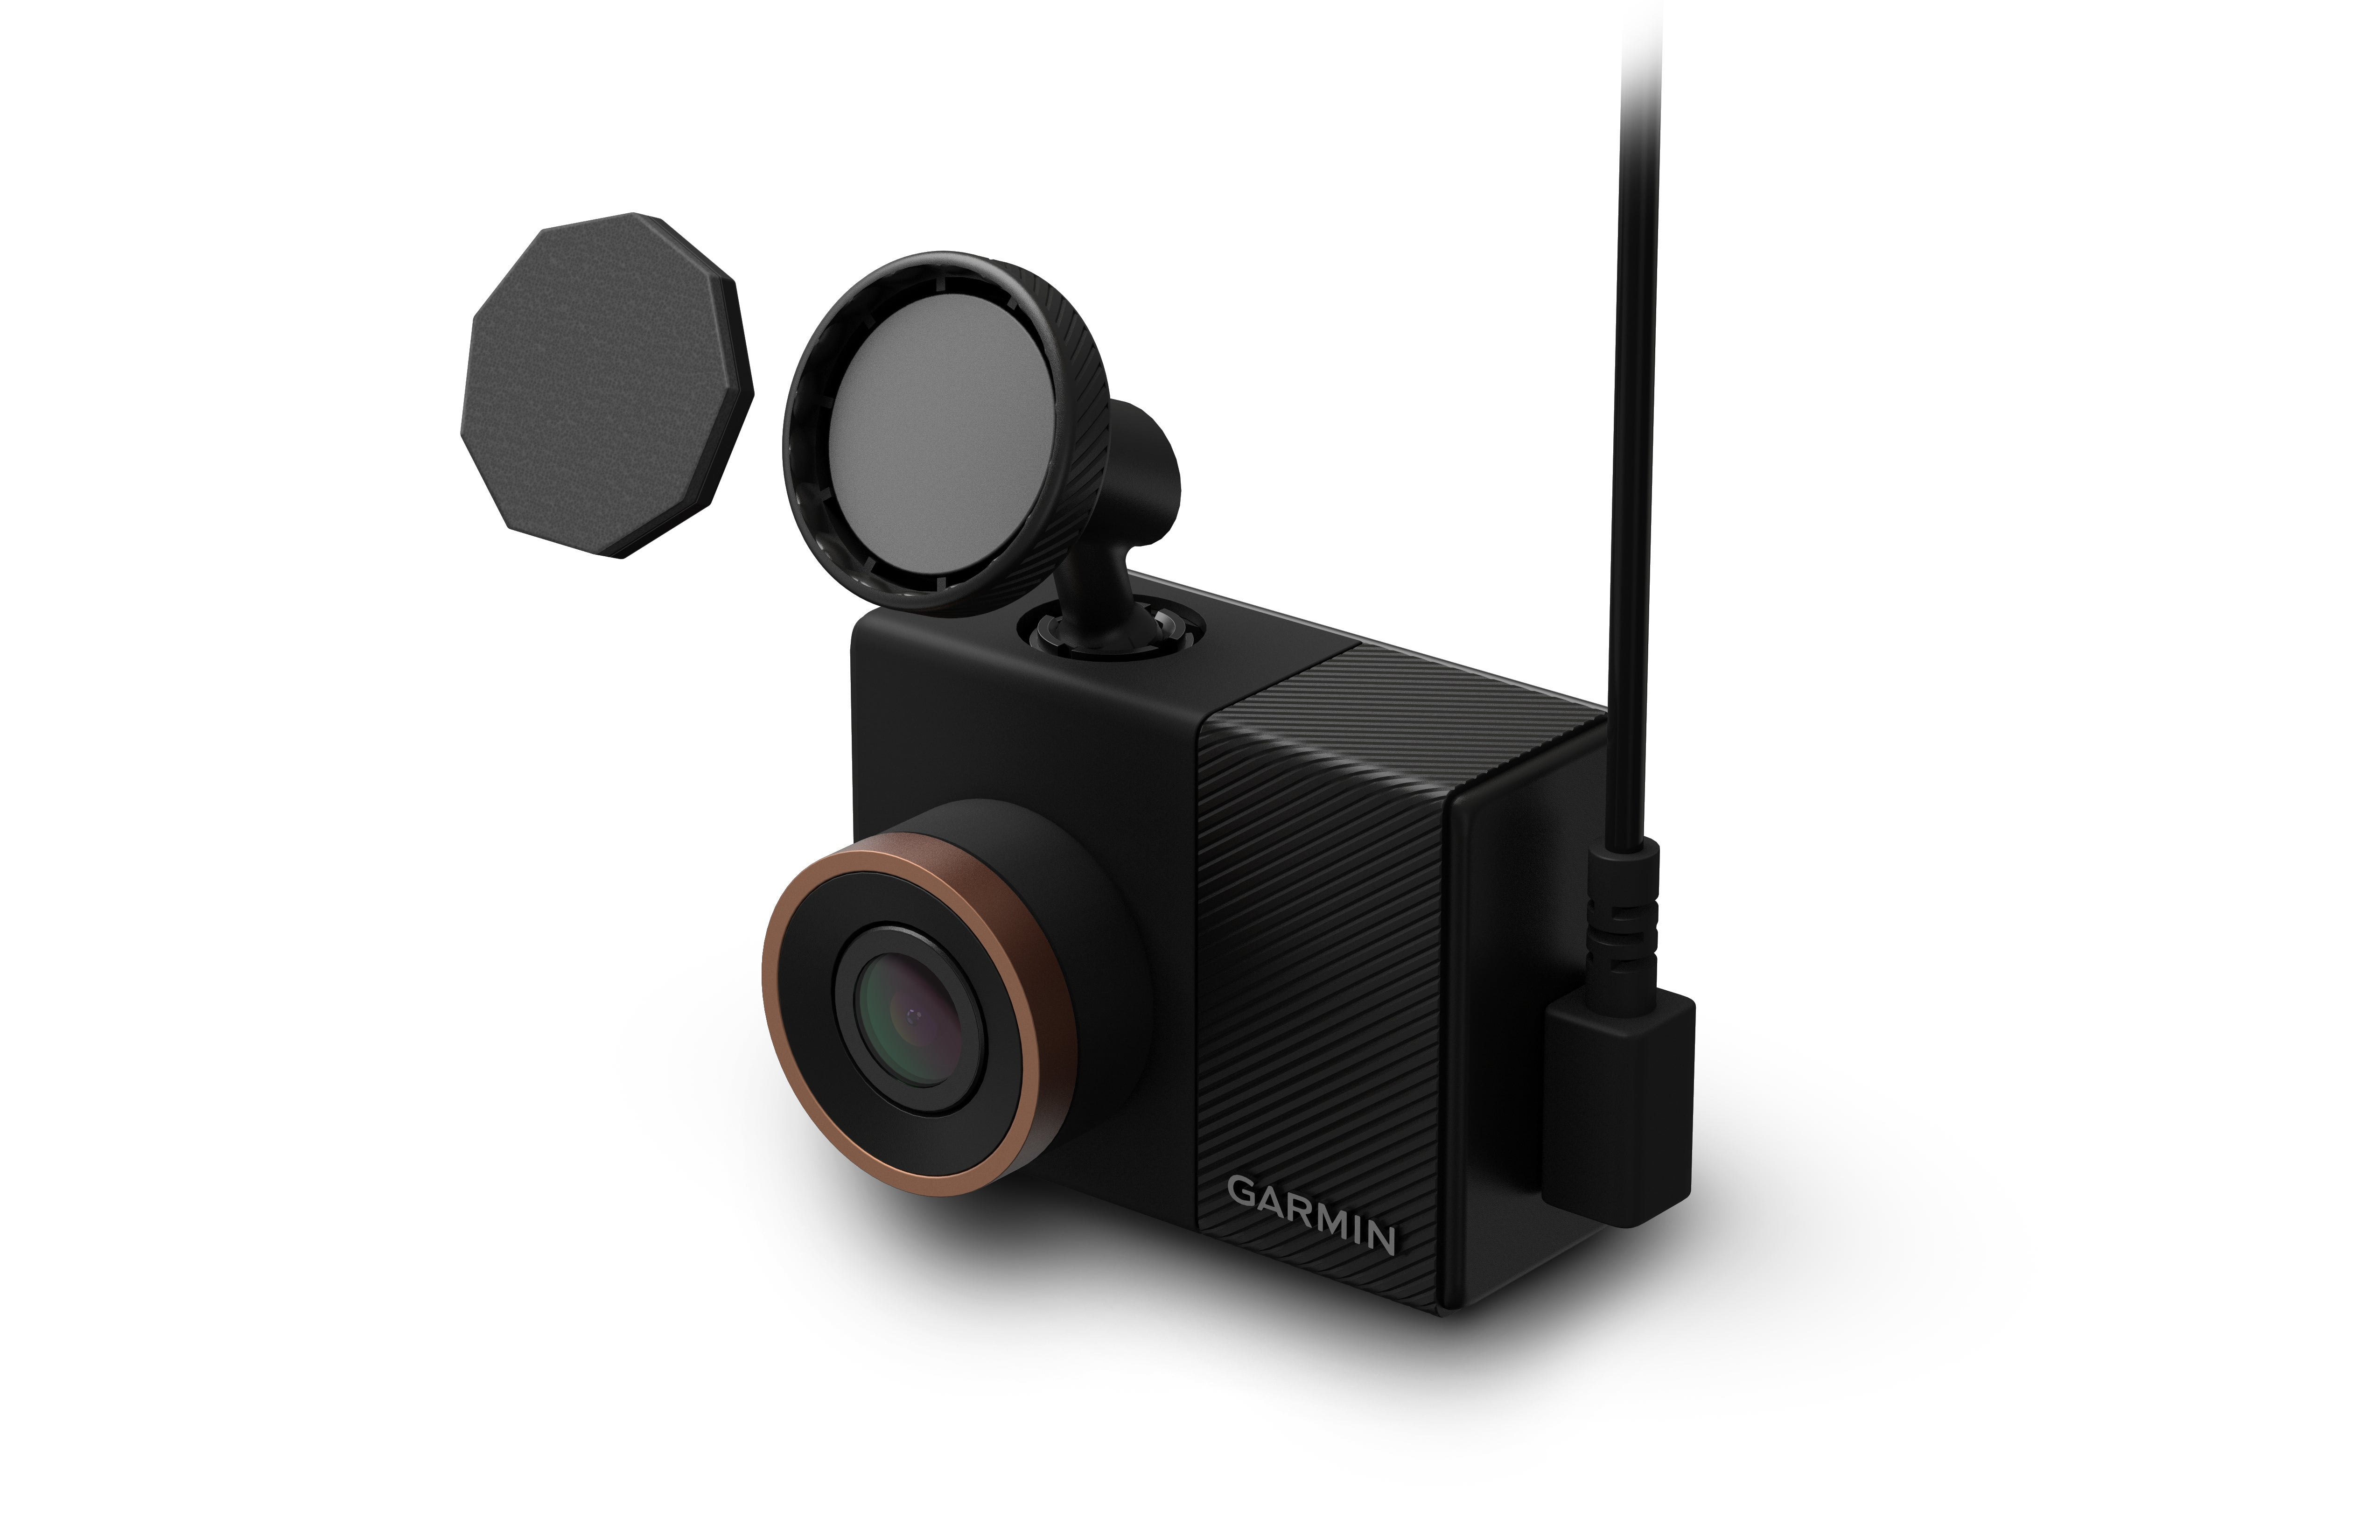 Garmin dash cam 55 review a compact cure for common traffic r dashcam55 hr 1007 buycottarizona Gallery